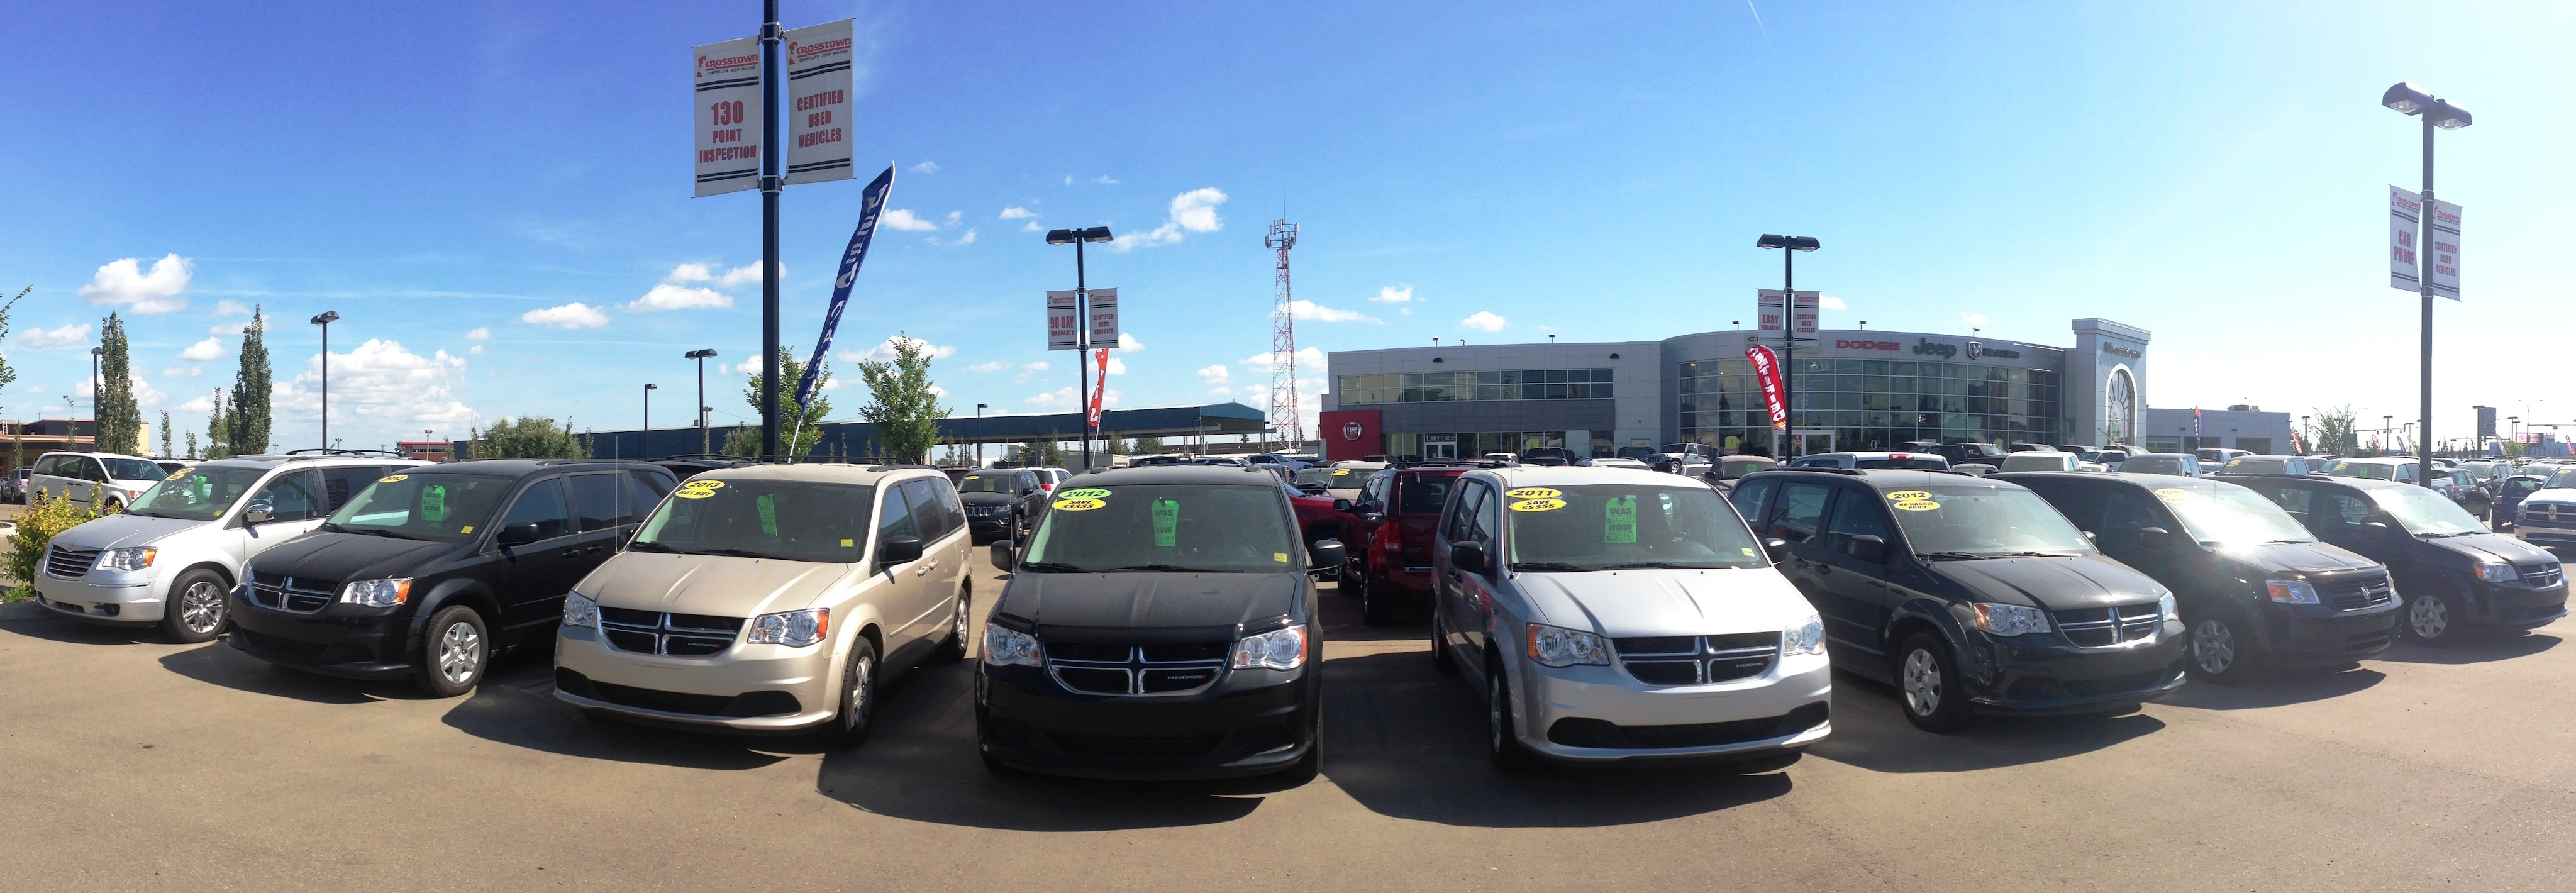 Used Vehicles In Edmonton Used Cars In Edmonton Used Trucks In Edmonton